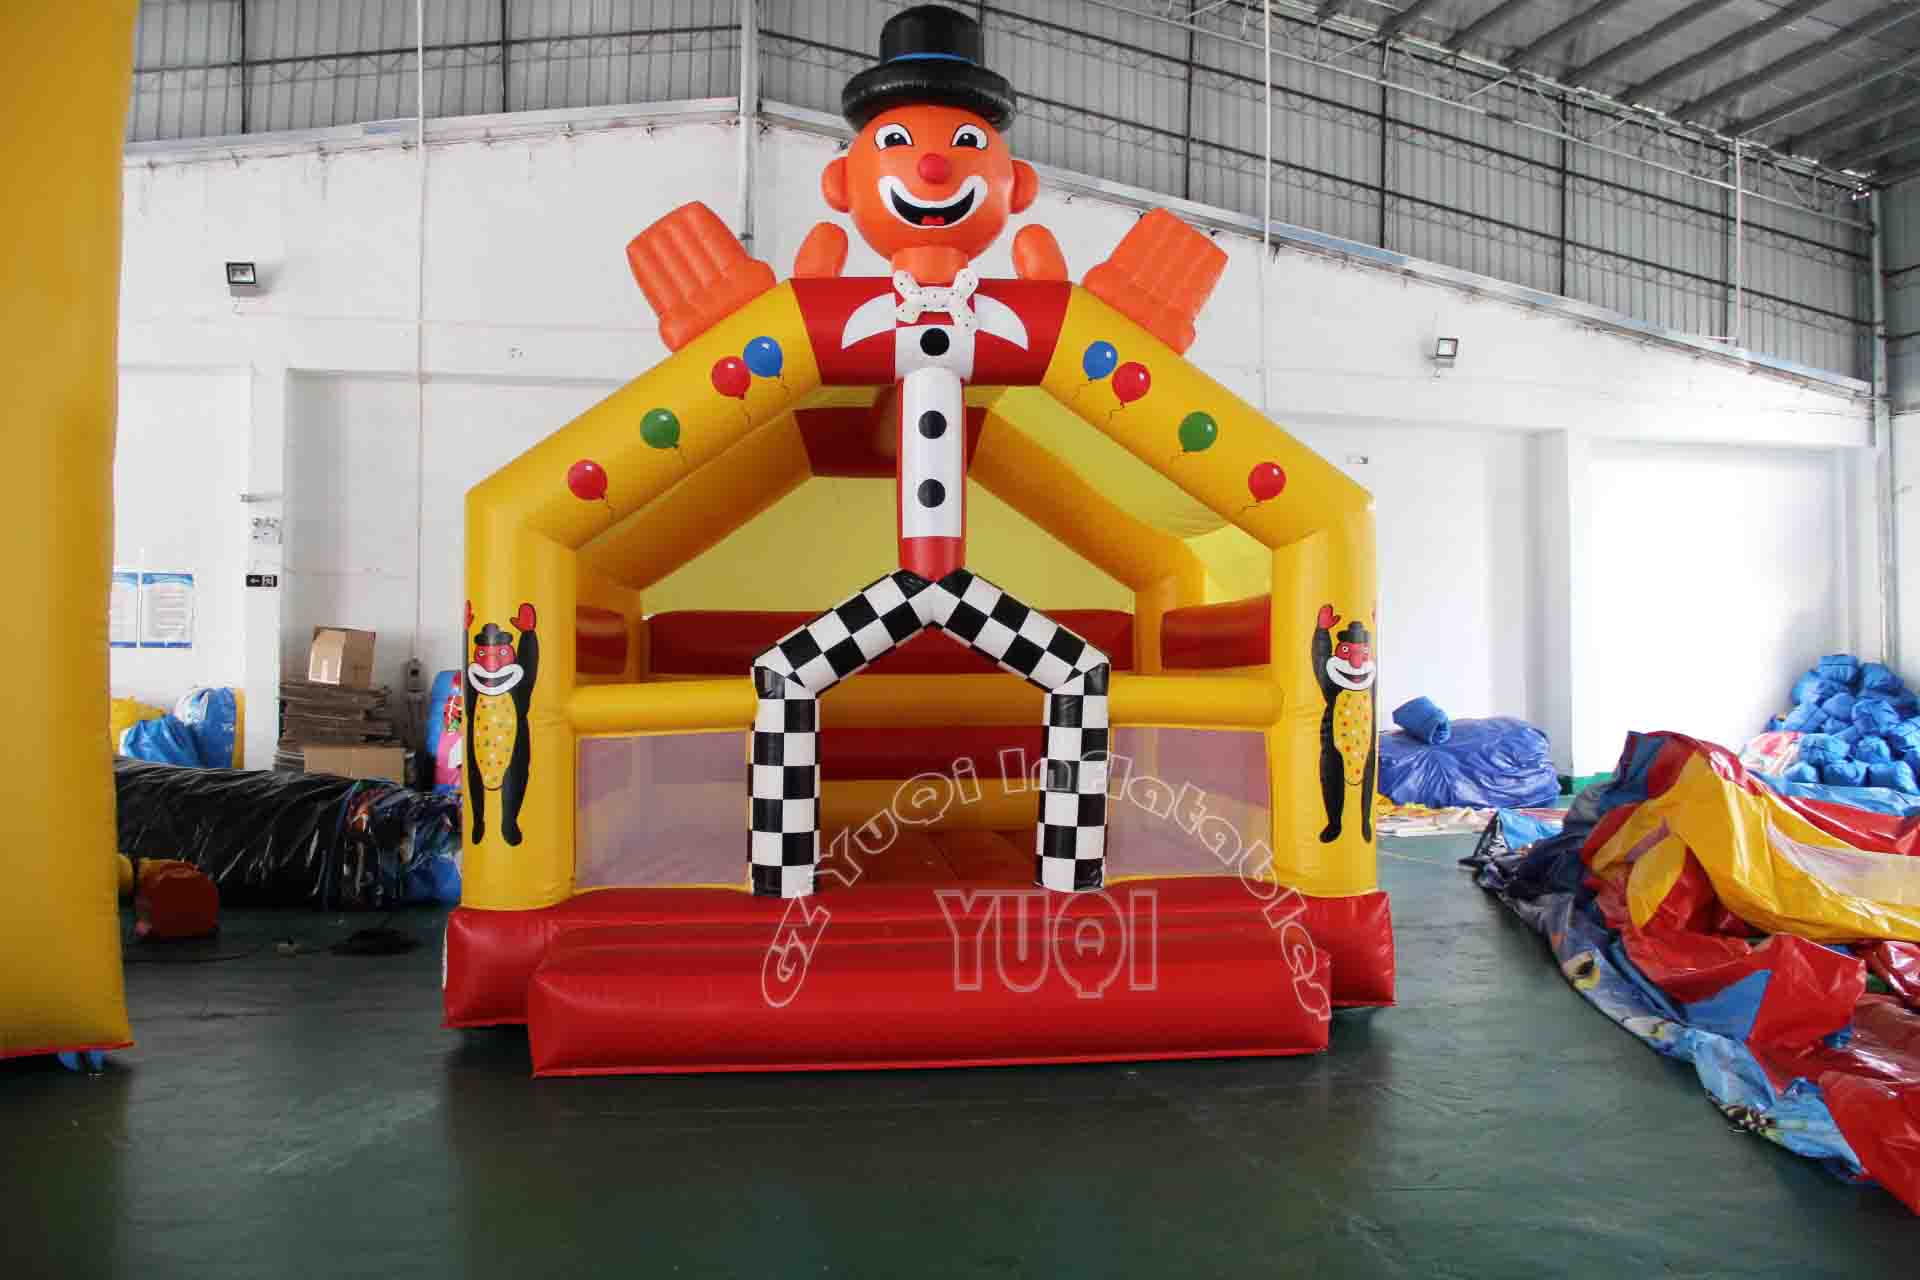 YUQI-Best Yq53 Happy Small Bounce House For Small Kids